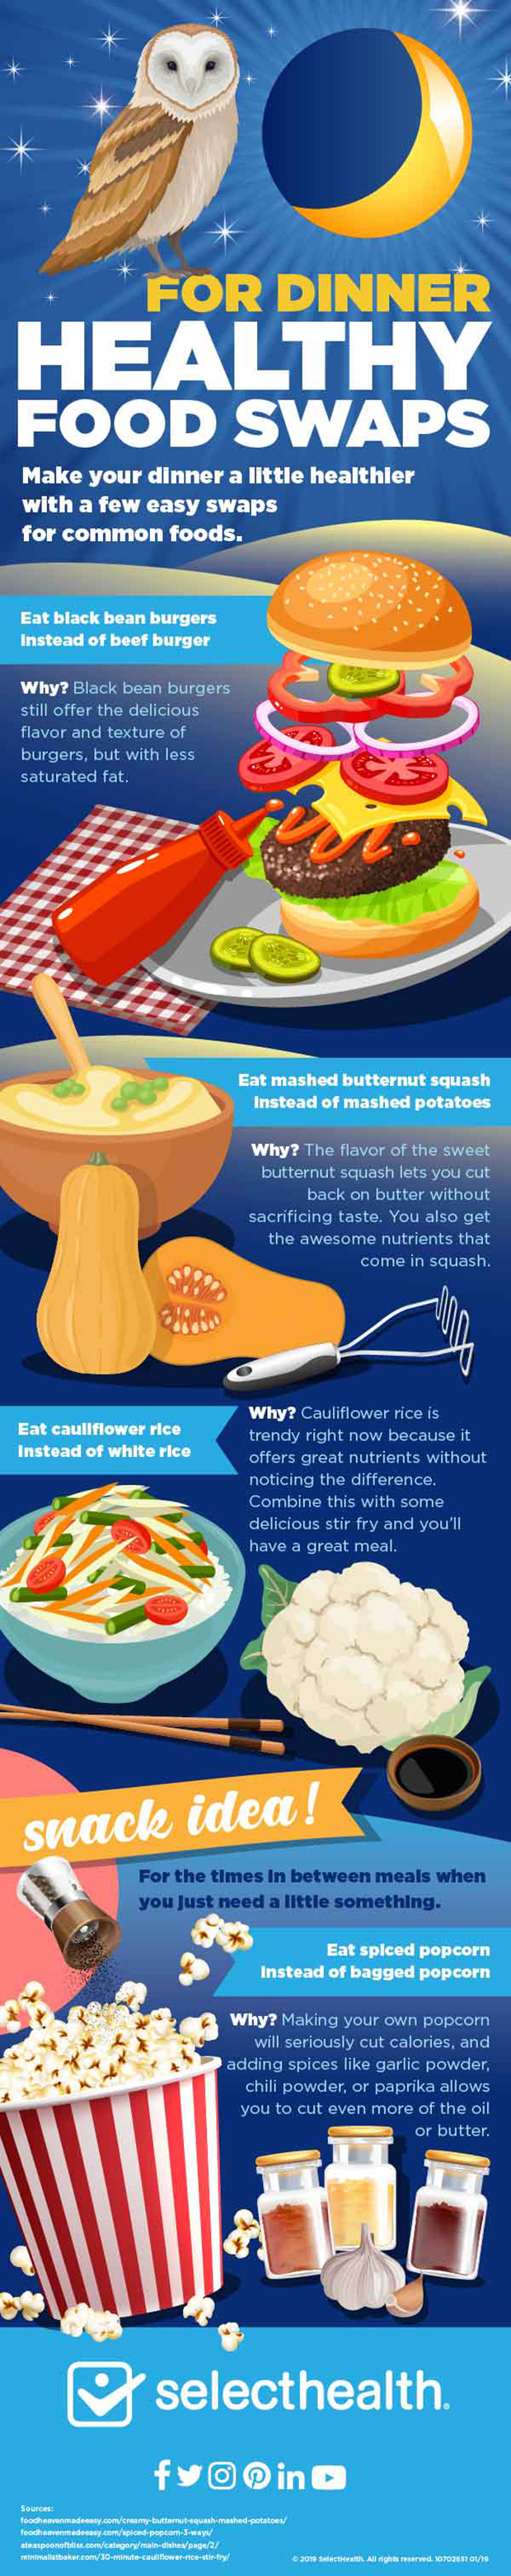 Infographic with examples of healthy food swaps for dinner